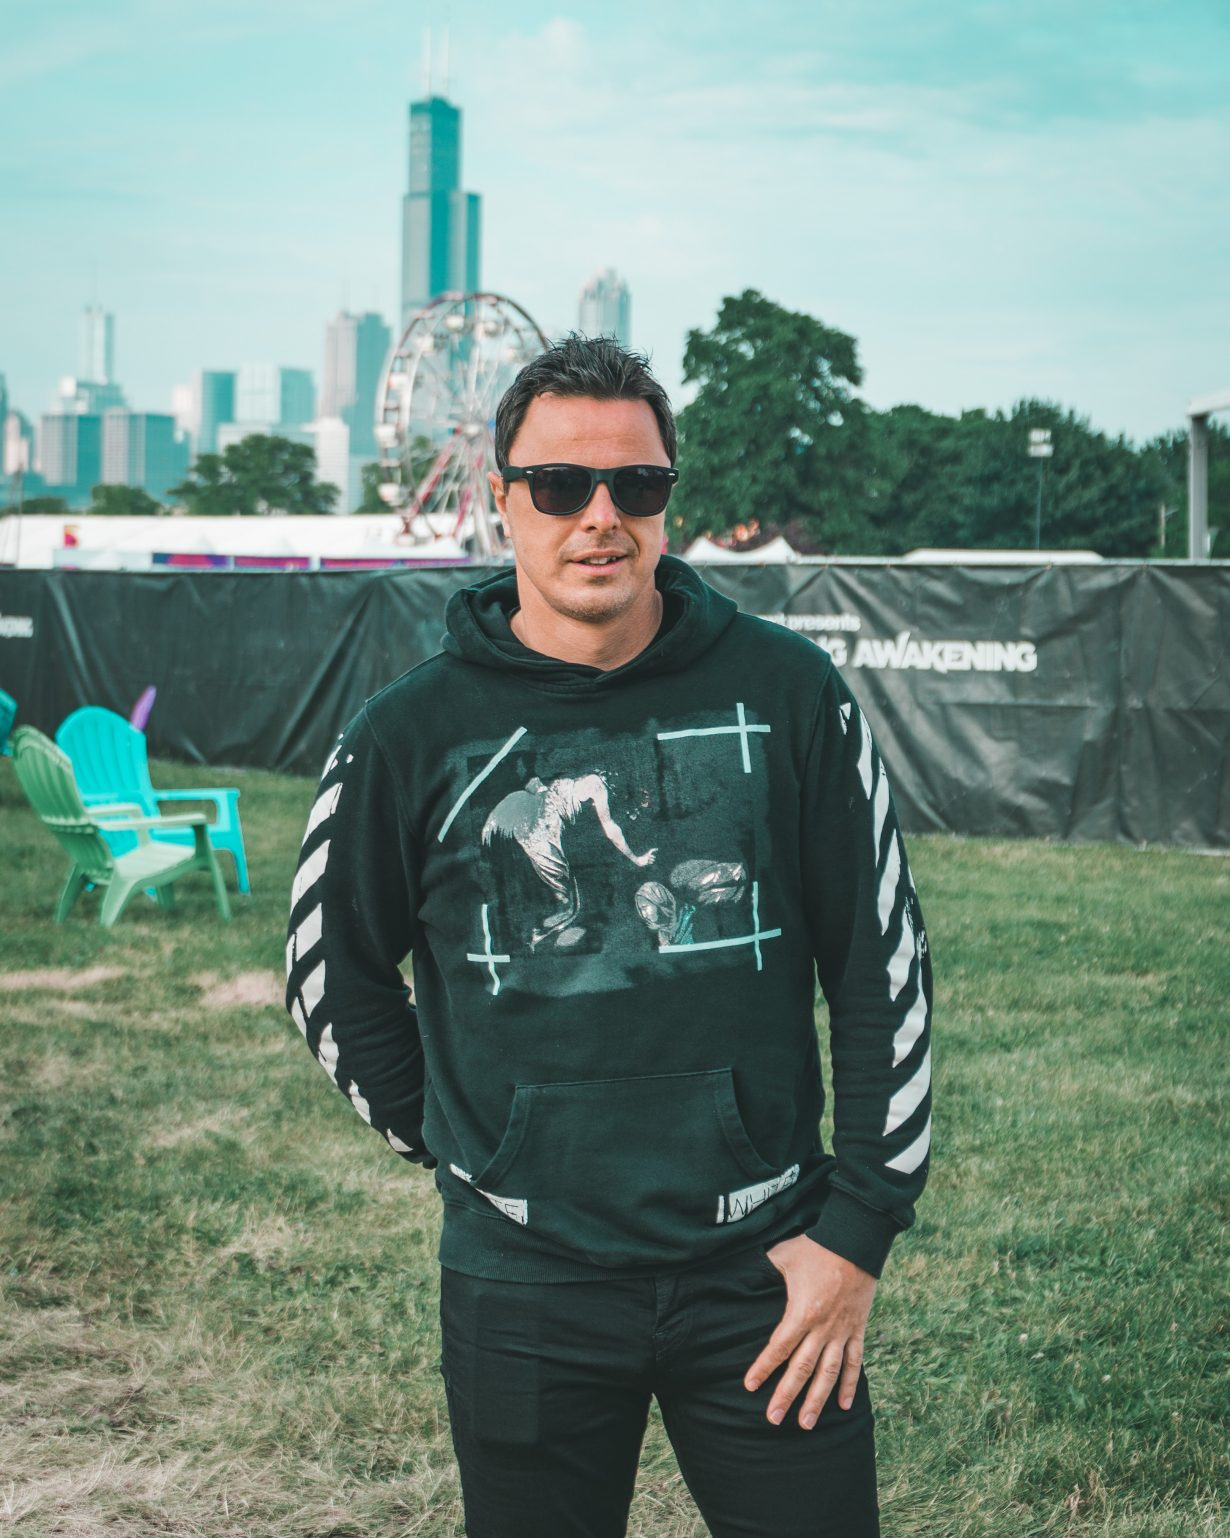 000009107712 1230x1538 Spring Awakening Music Festival 2018 Provides a Host of World Renowned DJs and Entertainers